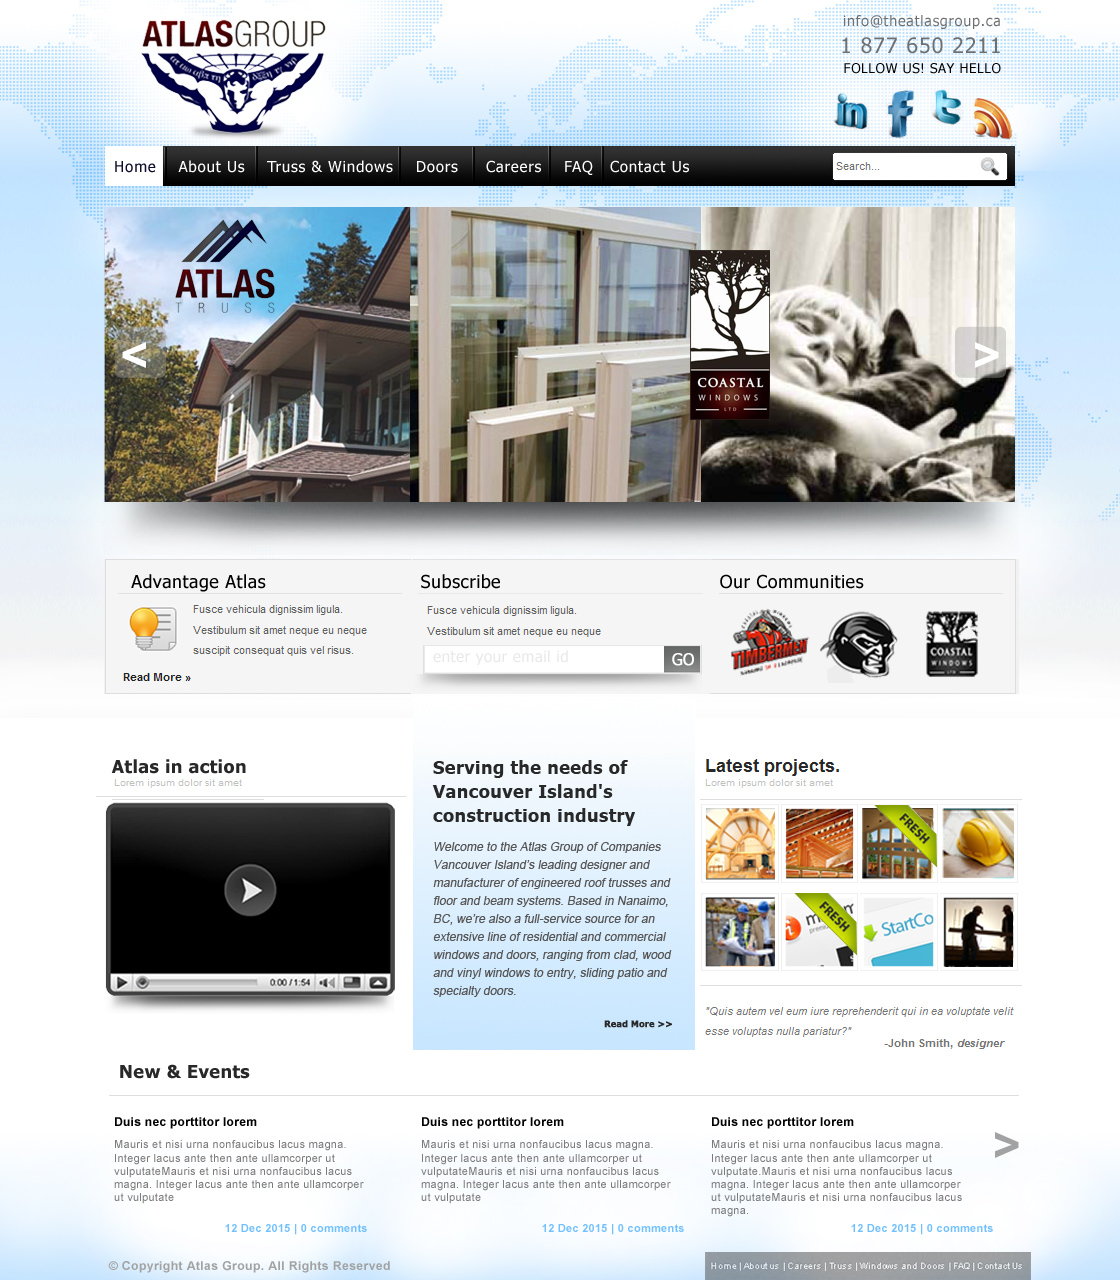 Web Page Design by haricane - Entry No. 82 in the Web Page Design Contest The Atlas Group Website.